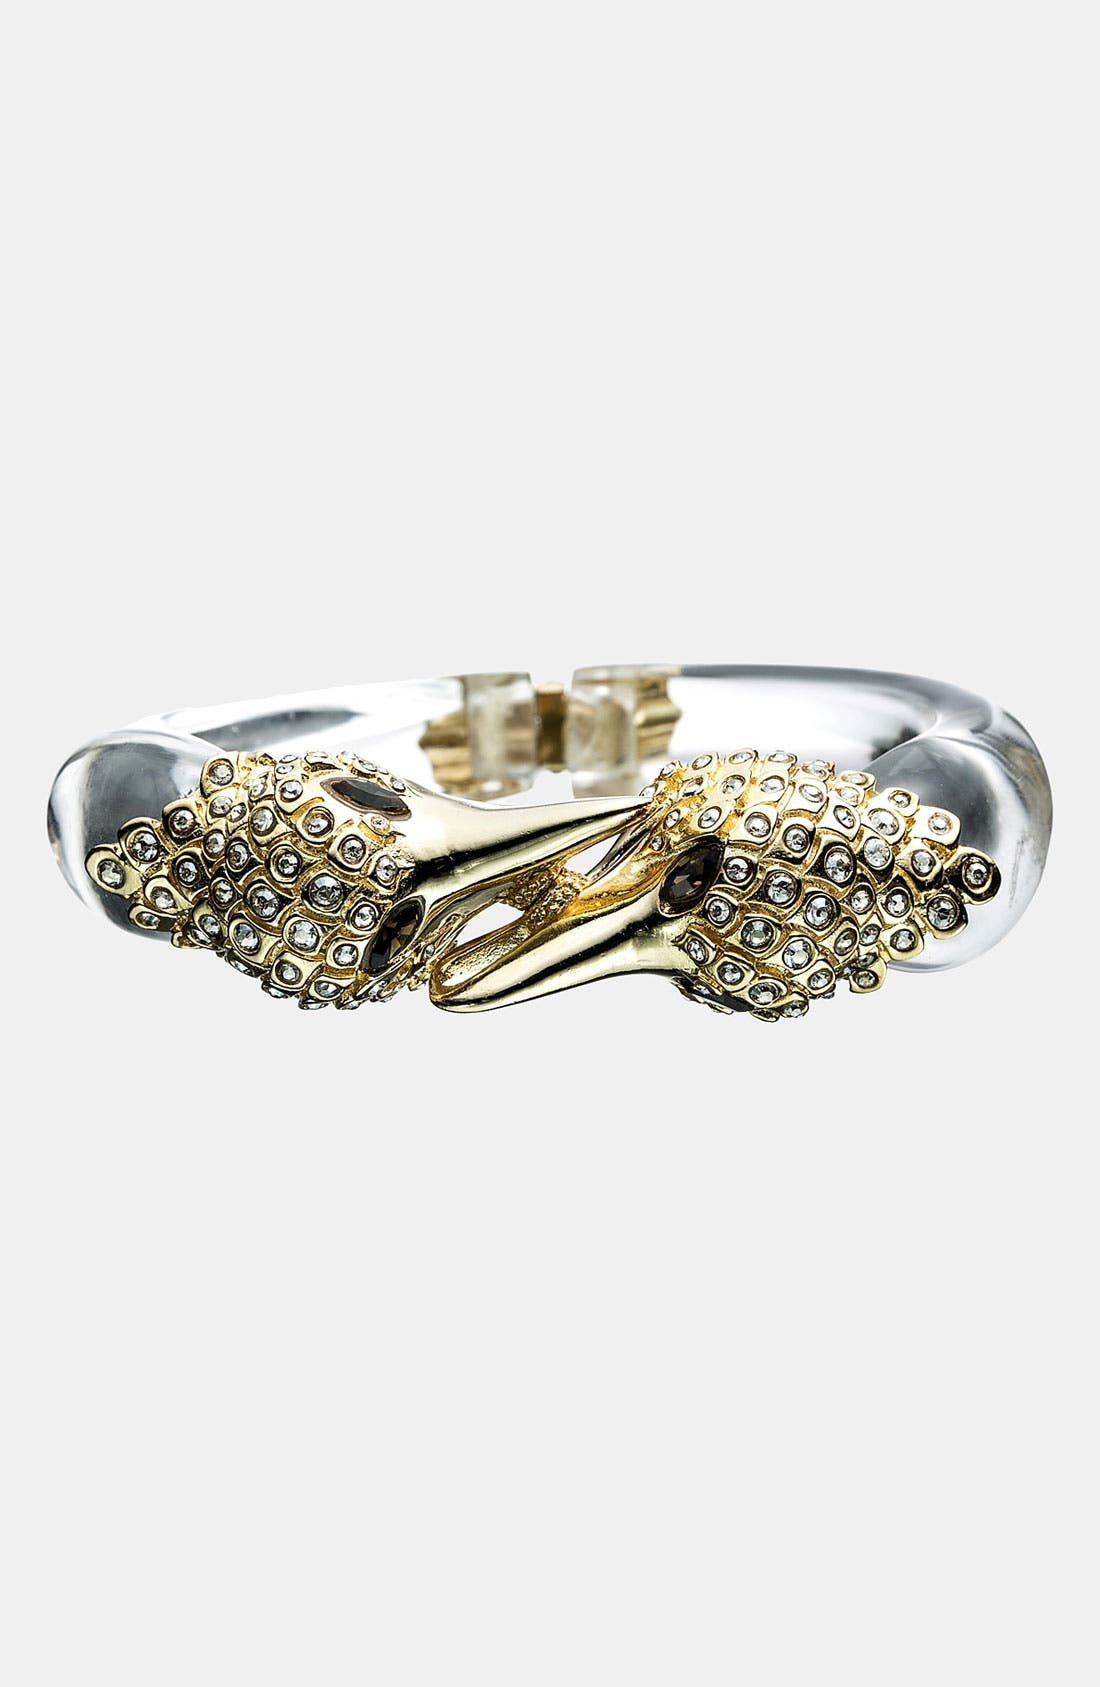 Alternate Image 1 Selected - Alexis Bittar 'Ophelia' Medium Hummingbird Bracelet